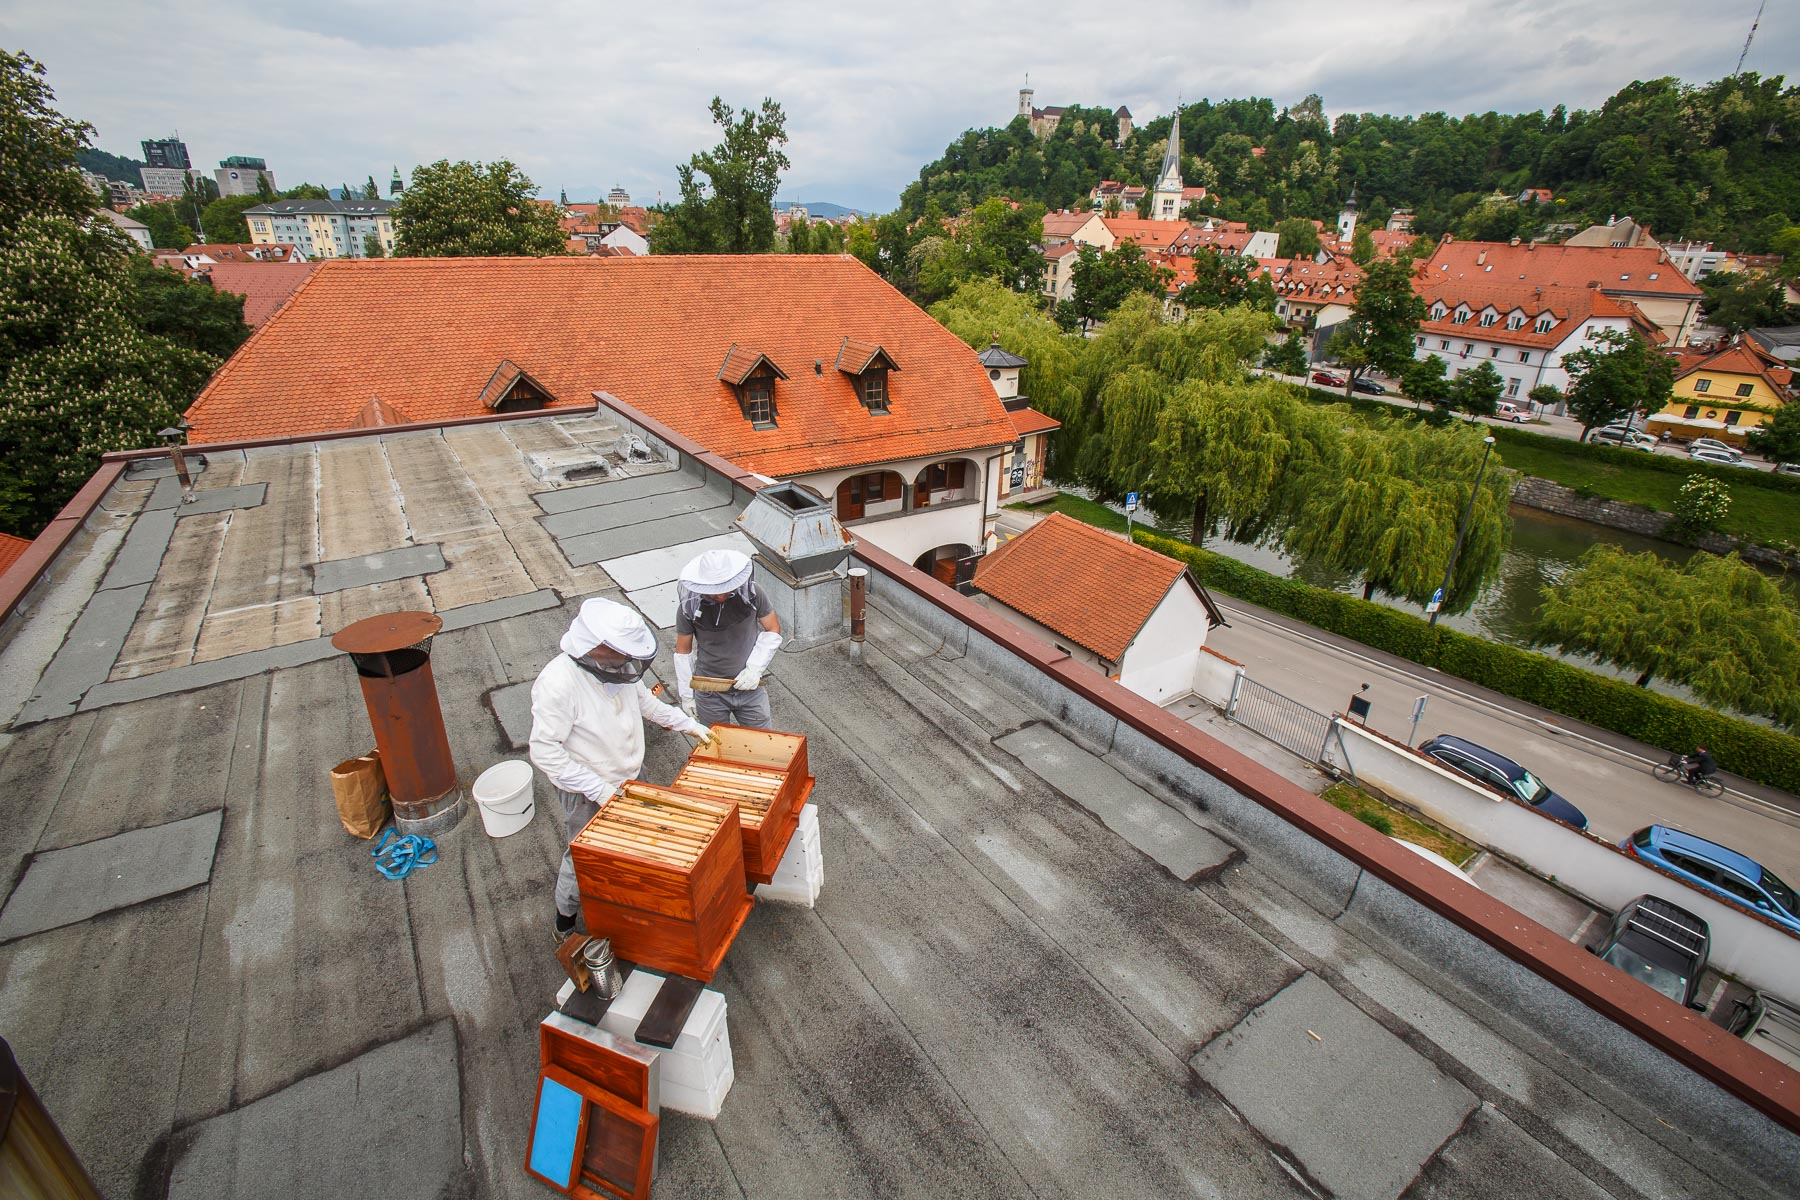 Trušnovec inspects the beehives on the roof of the Urban Planning Institute of the Republic of Slovenia in Ljubljana. Joining him is an employee who is a beginner beekeeper.